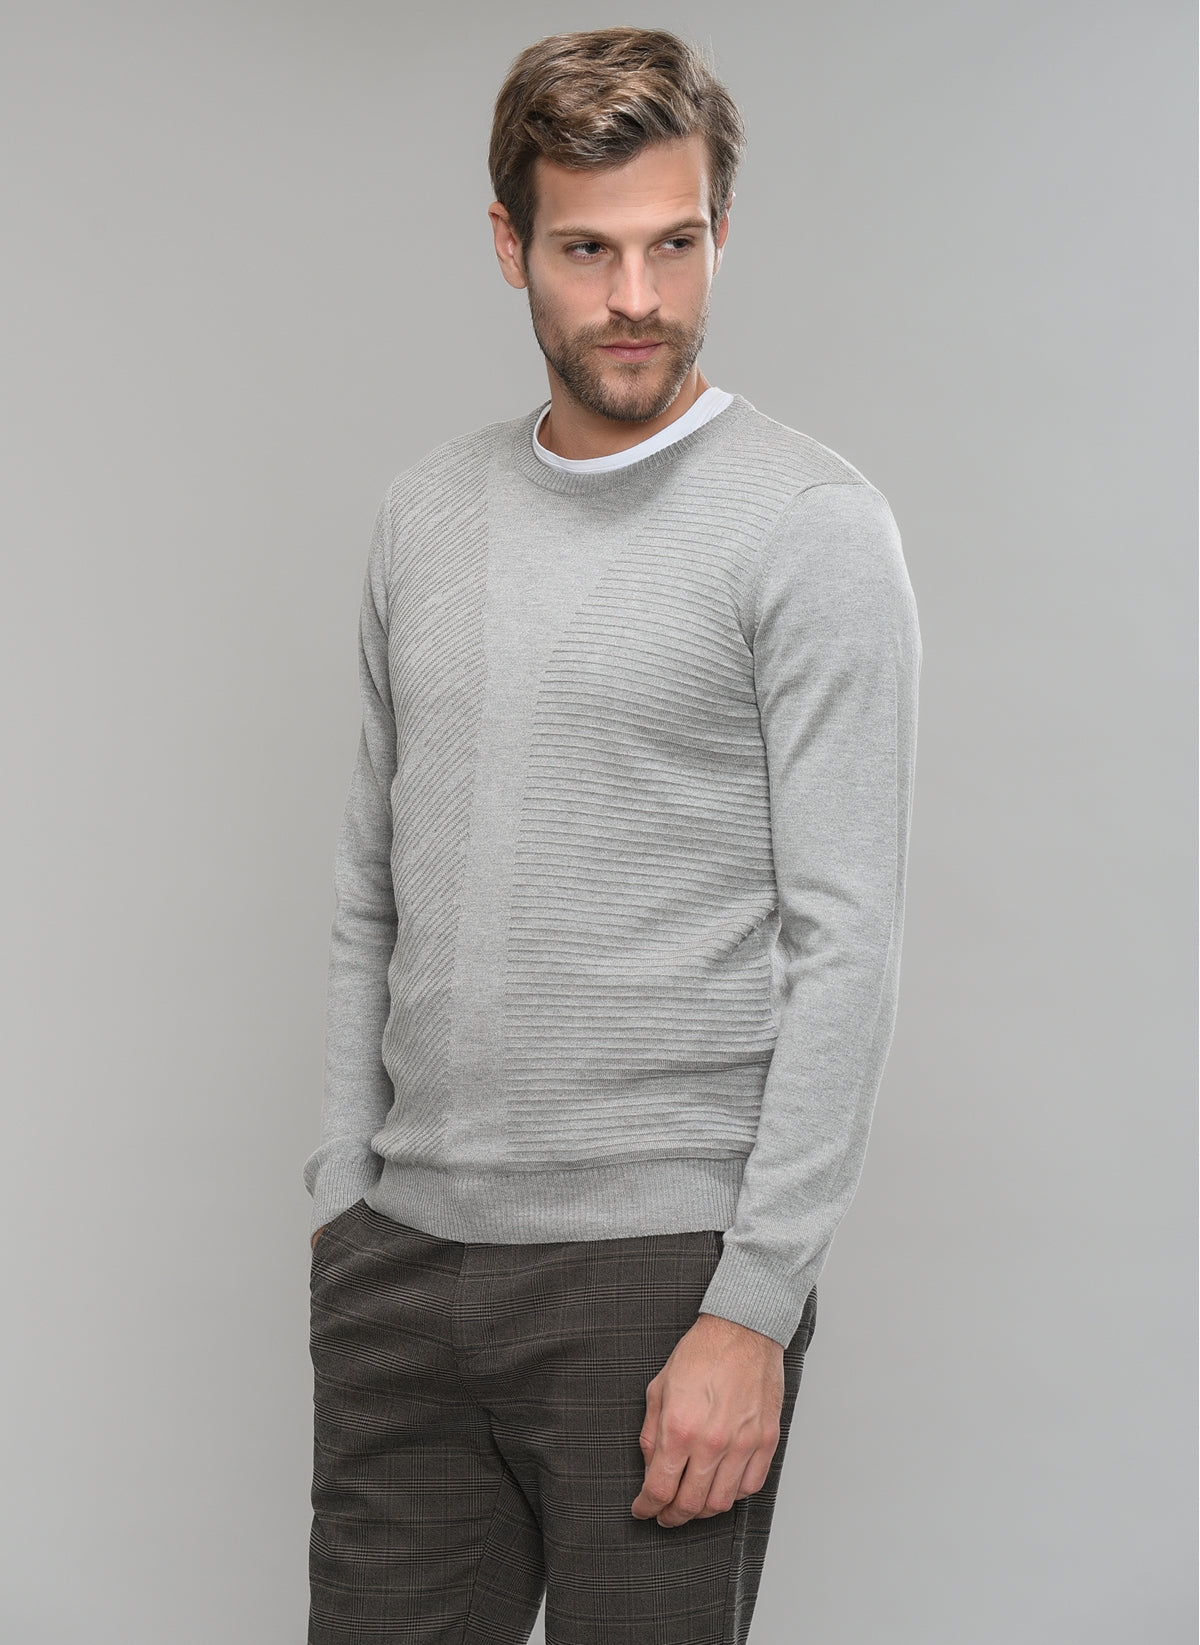 Patterned-Front Sweater in Grey Heather